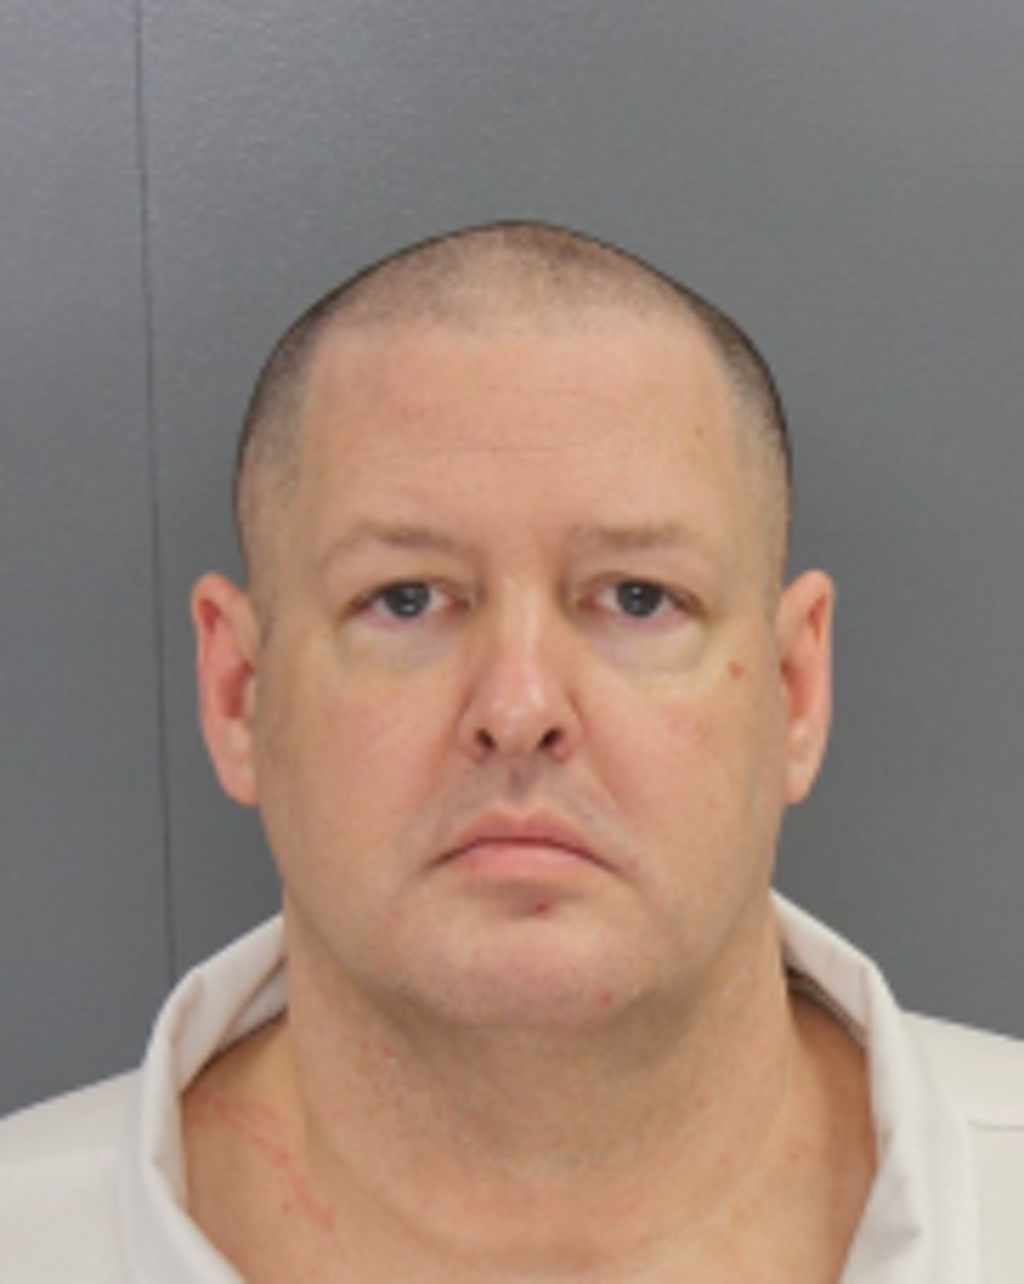 South Carolina Killer Pleads Guilty to 7 Murders in Deal to Avoid Death Penalty